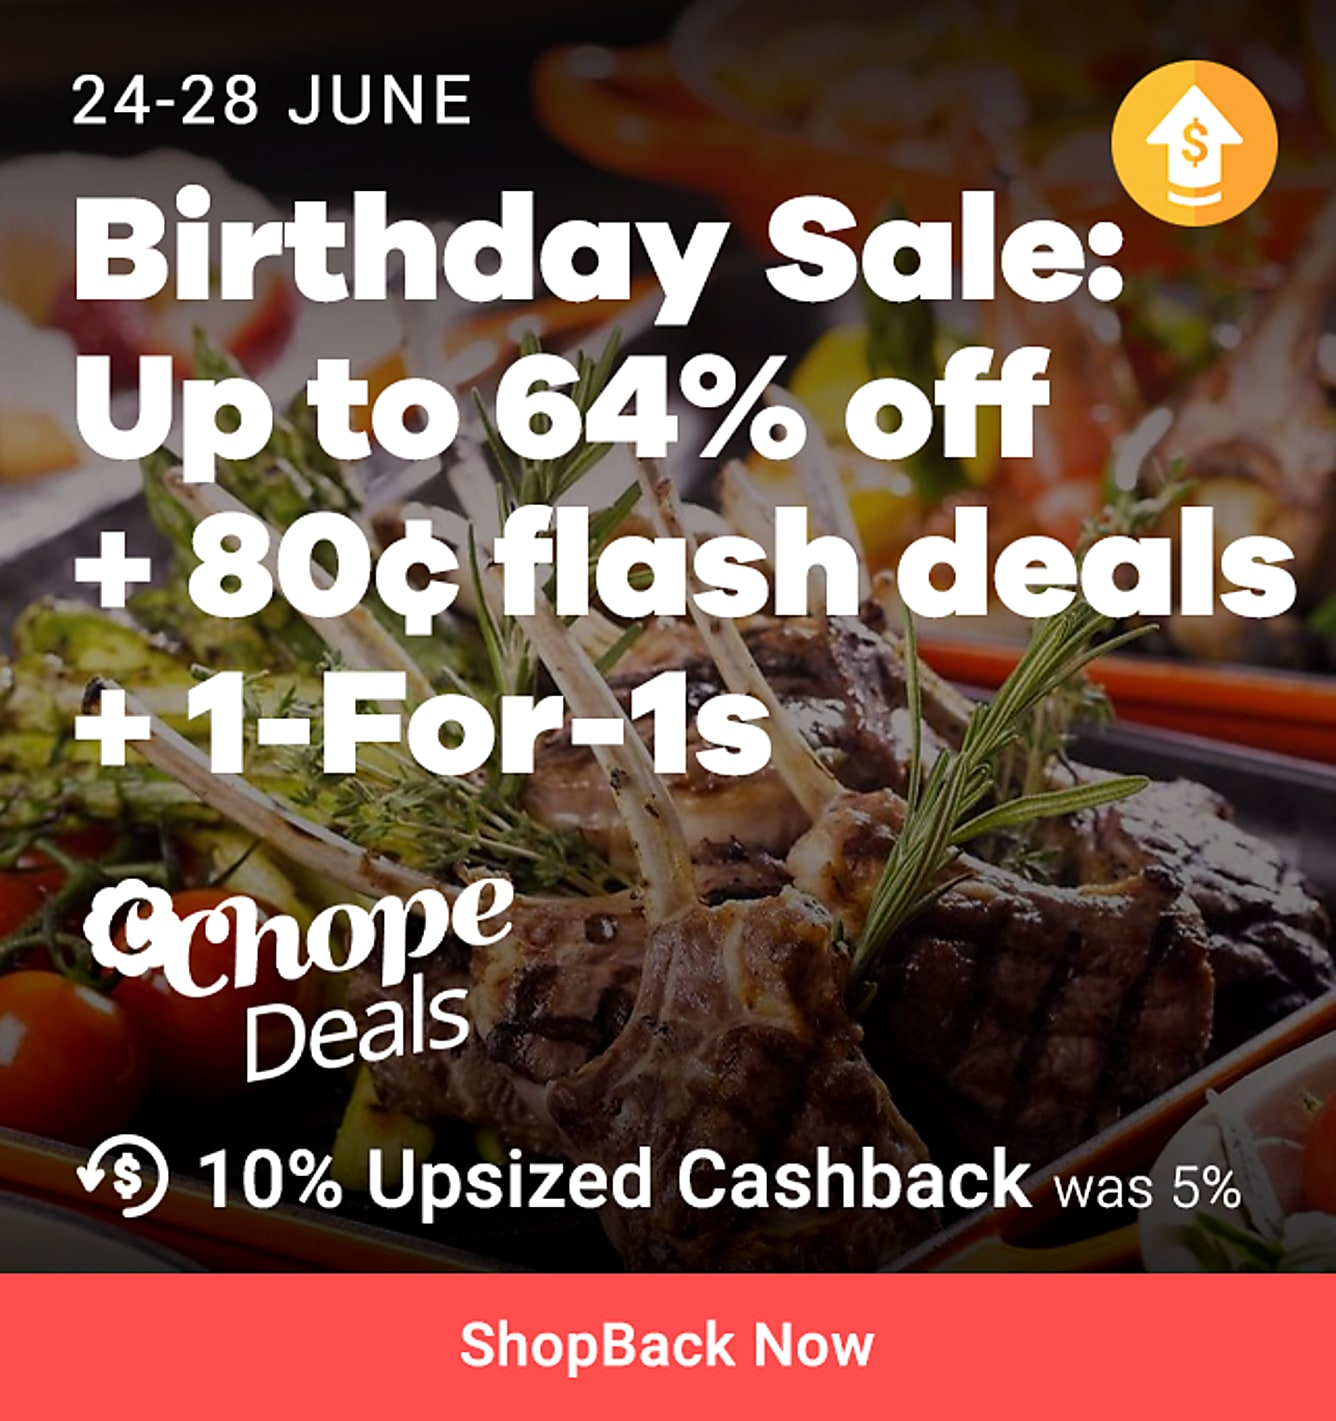 ChopeDeals Birthday Flash Sale up to 64% off + $0.80 flash deals + 1 for 1 + 10% upsized cashback from 24-28 June